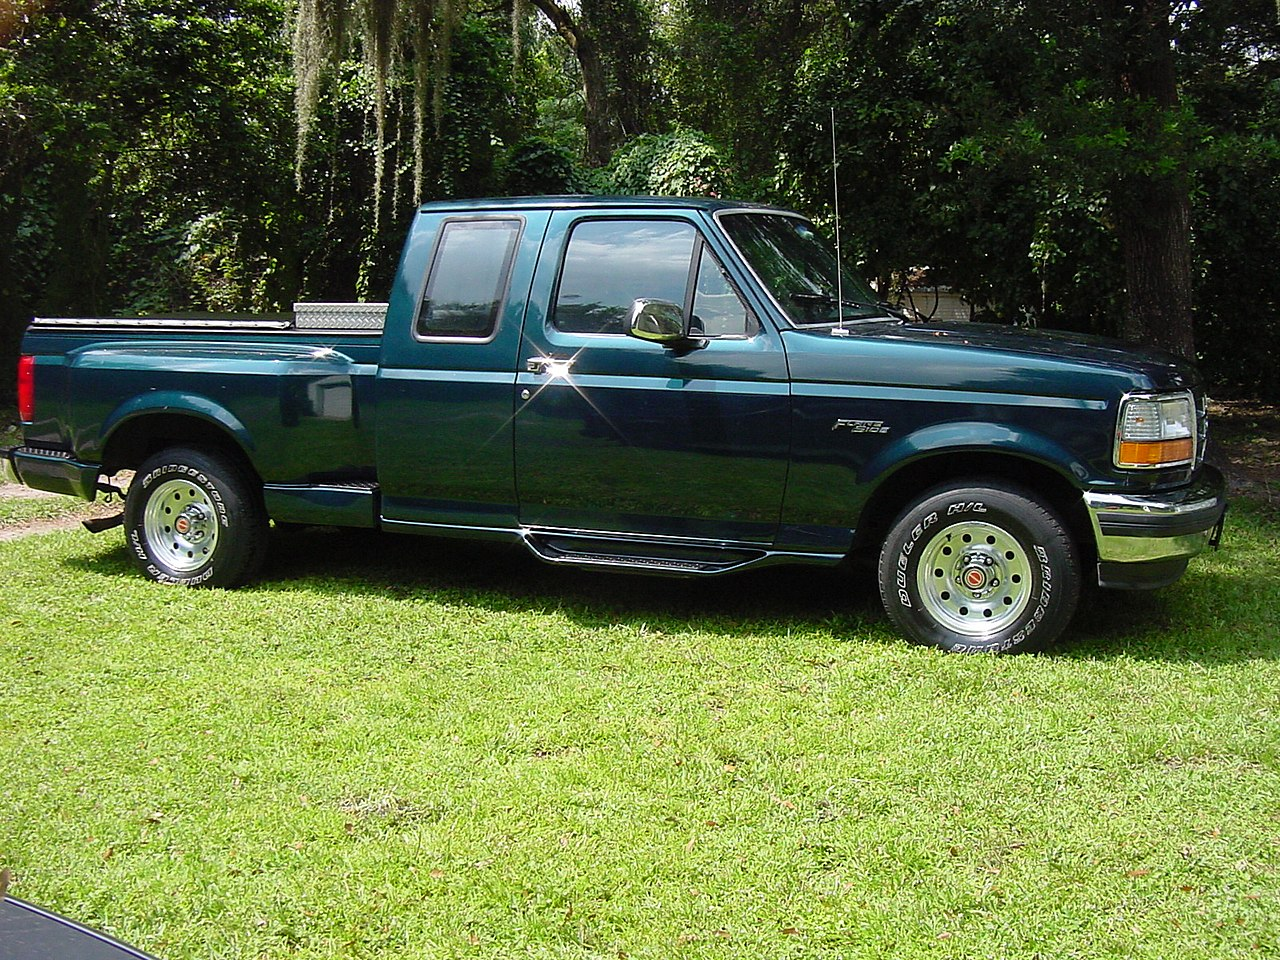 File:1994 Ford F-150 Flareside.JPG